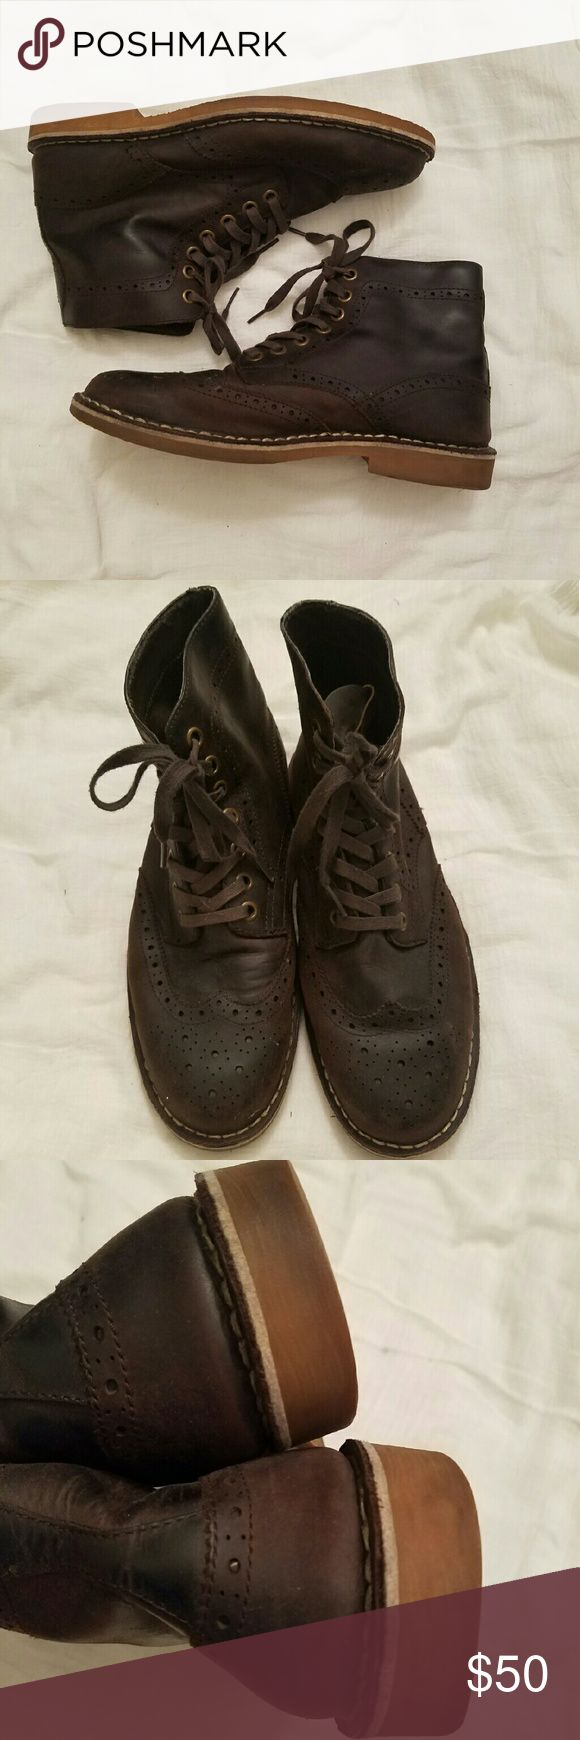 Aldo Size 42 mens brogue boots Brown Mens size 42 (size 9) ALDO shoe brogue style lace up boots preowned in great condition. Aldo Shoes Boots